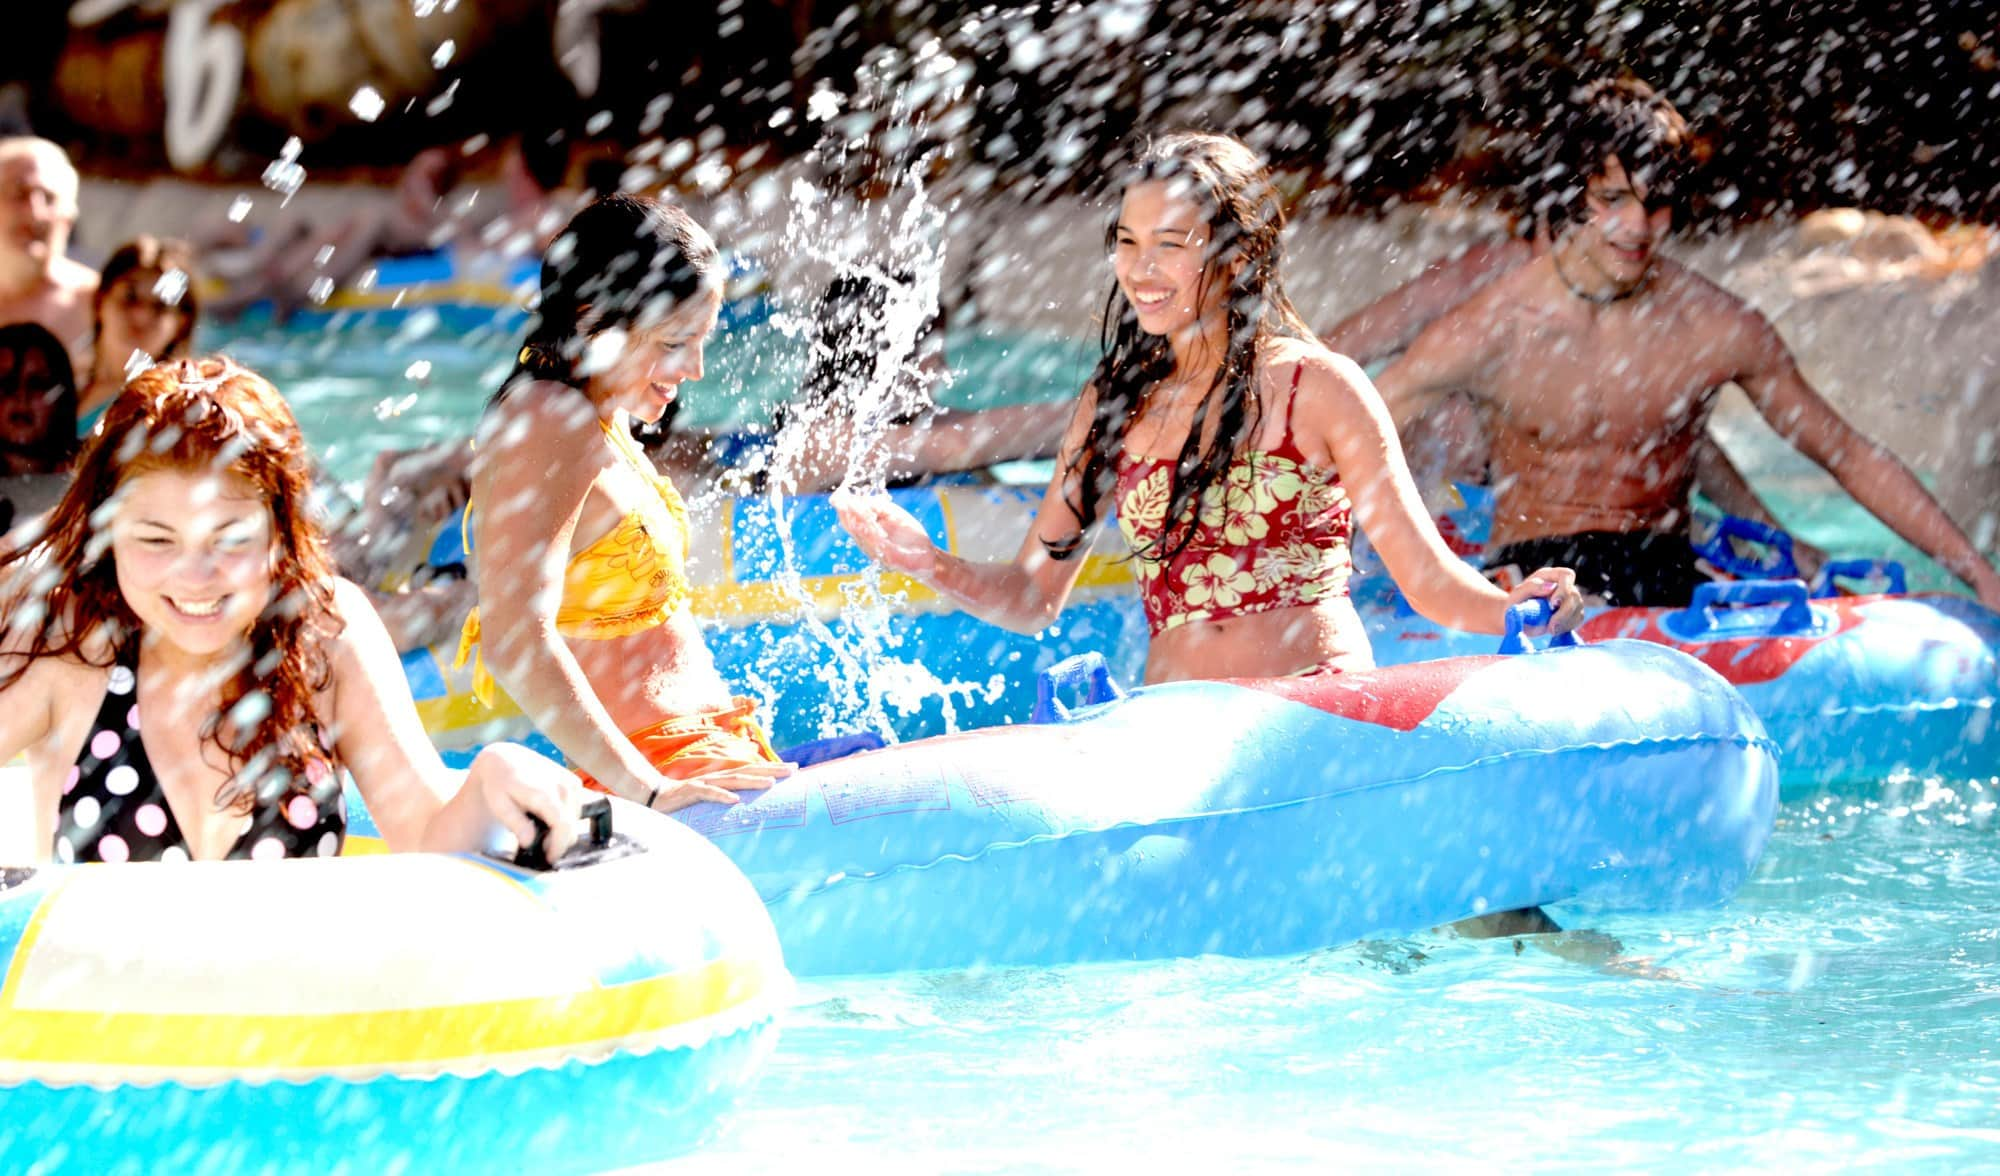 Plan a day at Typhoon Lagoon with teens and tweens ~ Disney World with Teens & Tweens